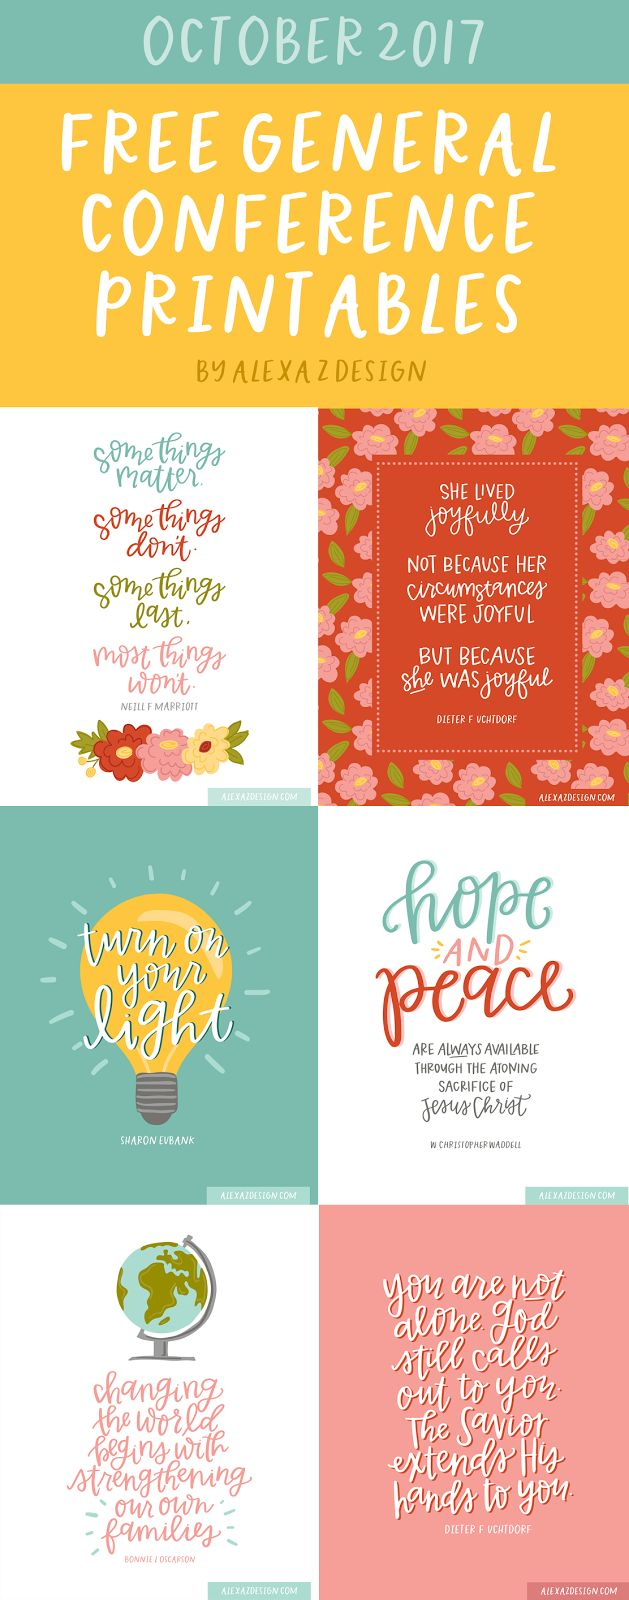 Free General Conference Printables - October 2018 - He and I